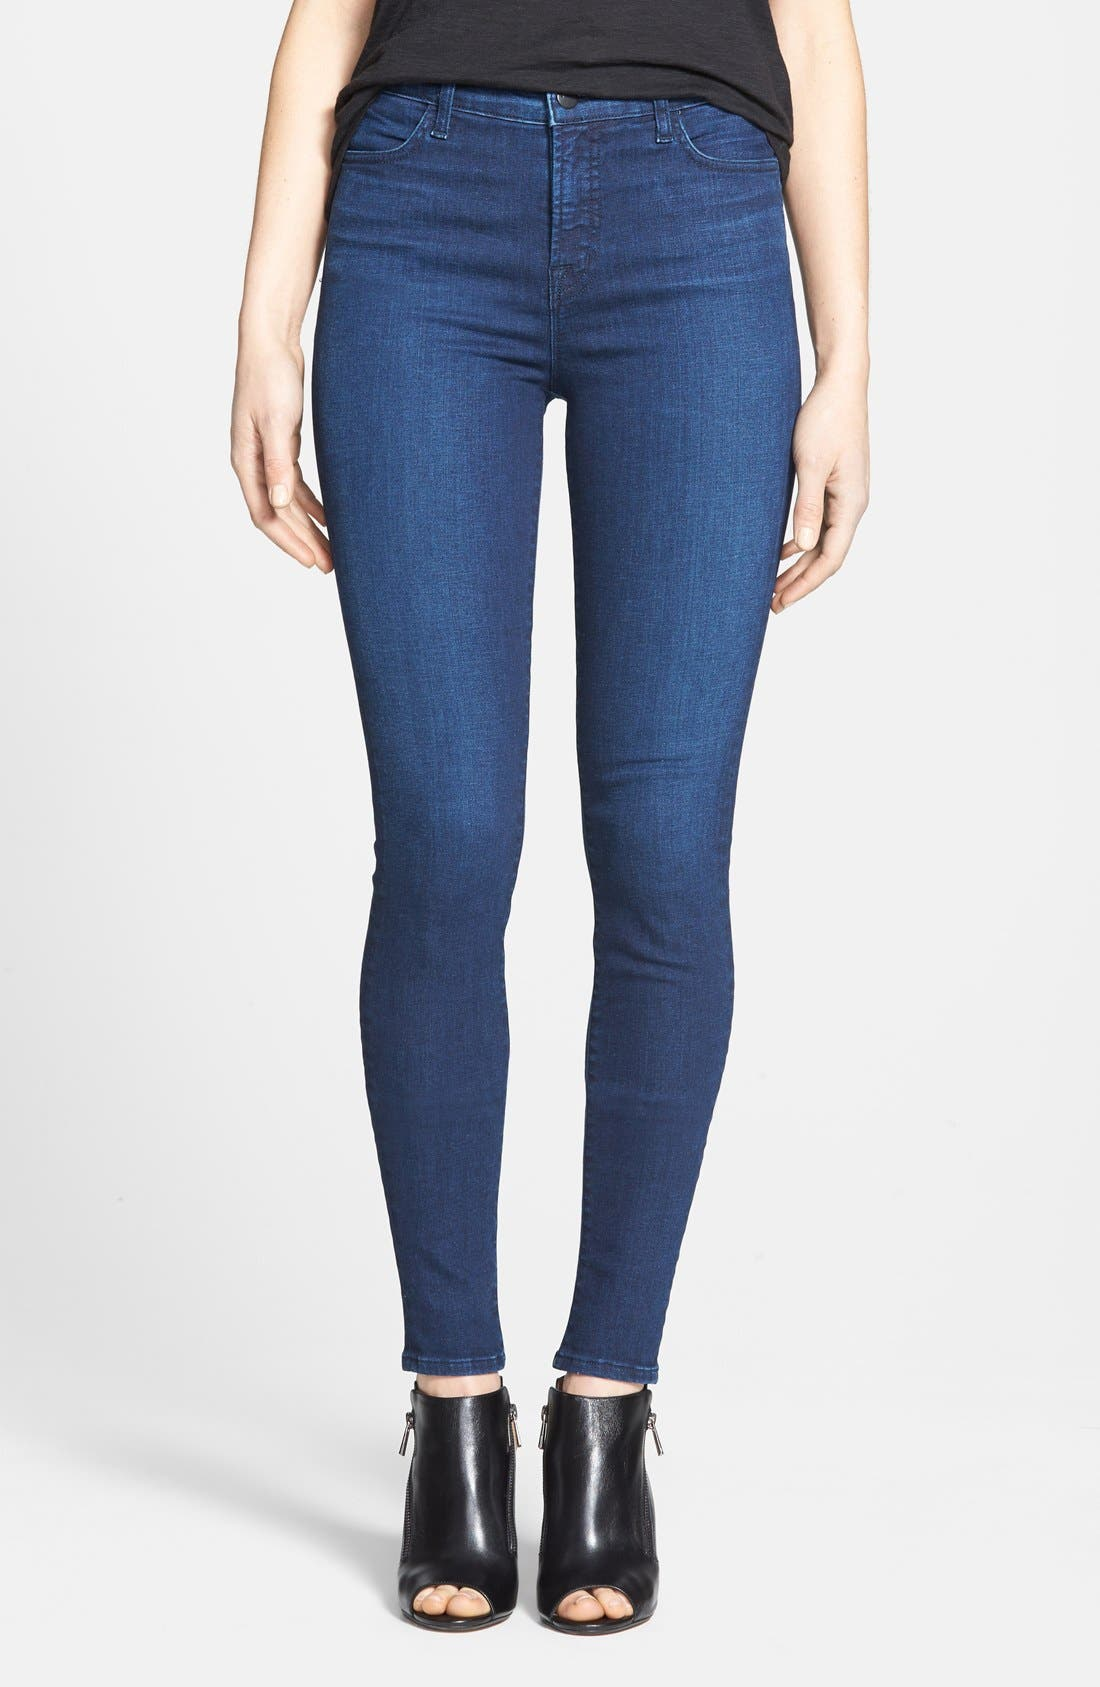 Main Image - J Brand 'Maria' High Rise Skinny Jeans (Supreme) (Nordstrom Exclusive)